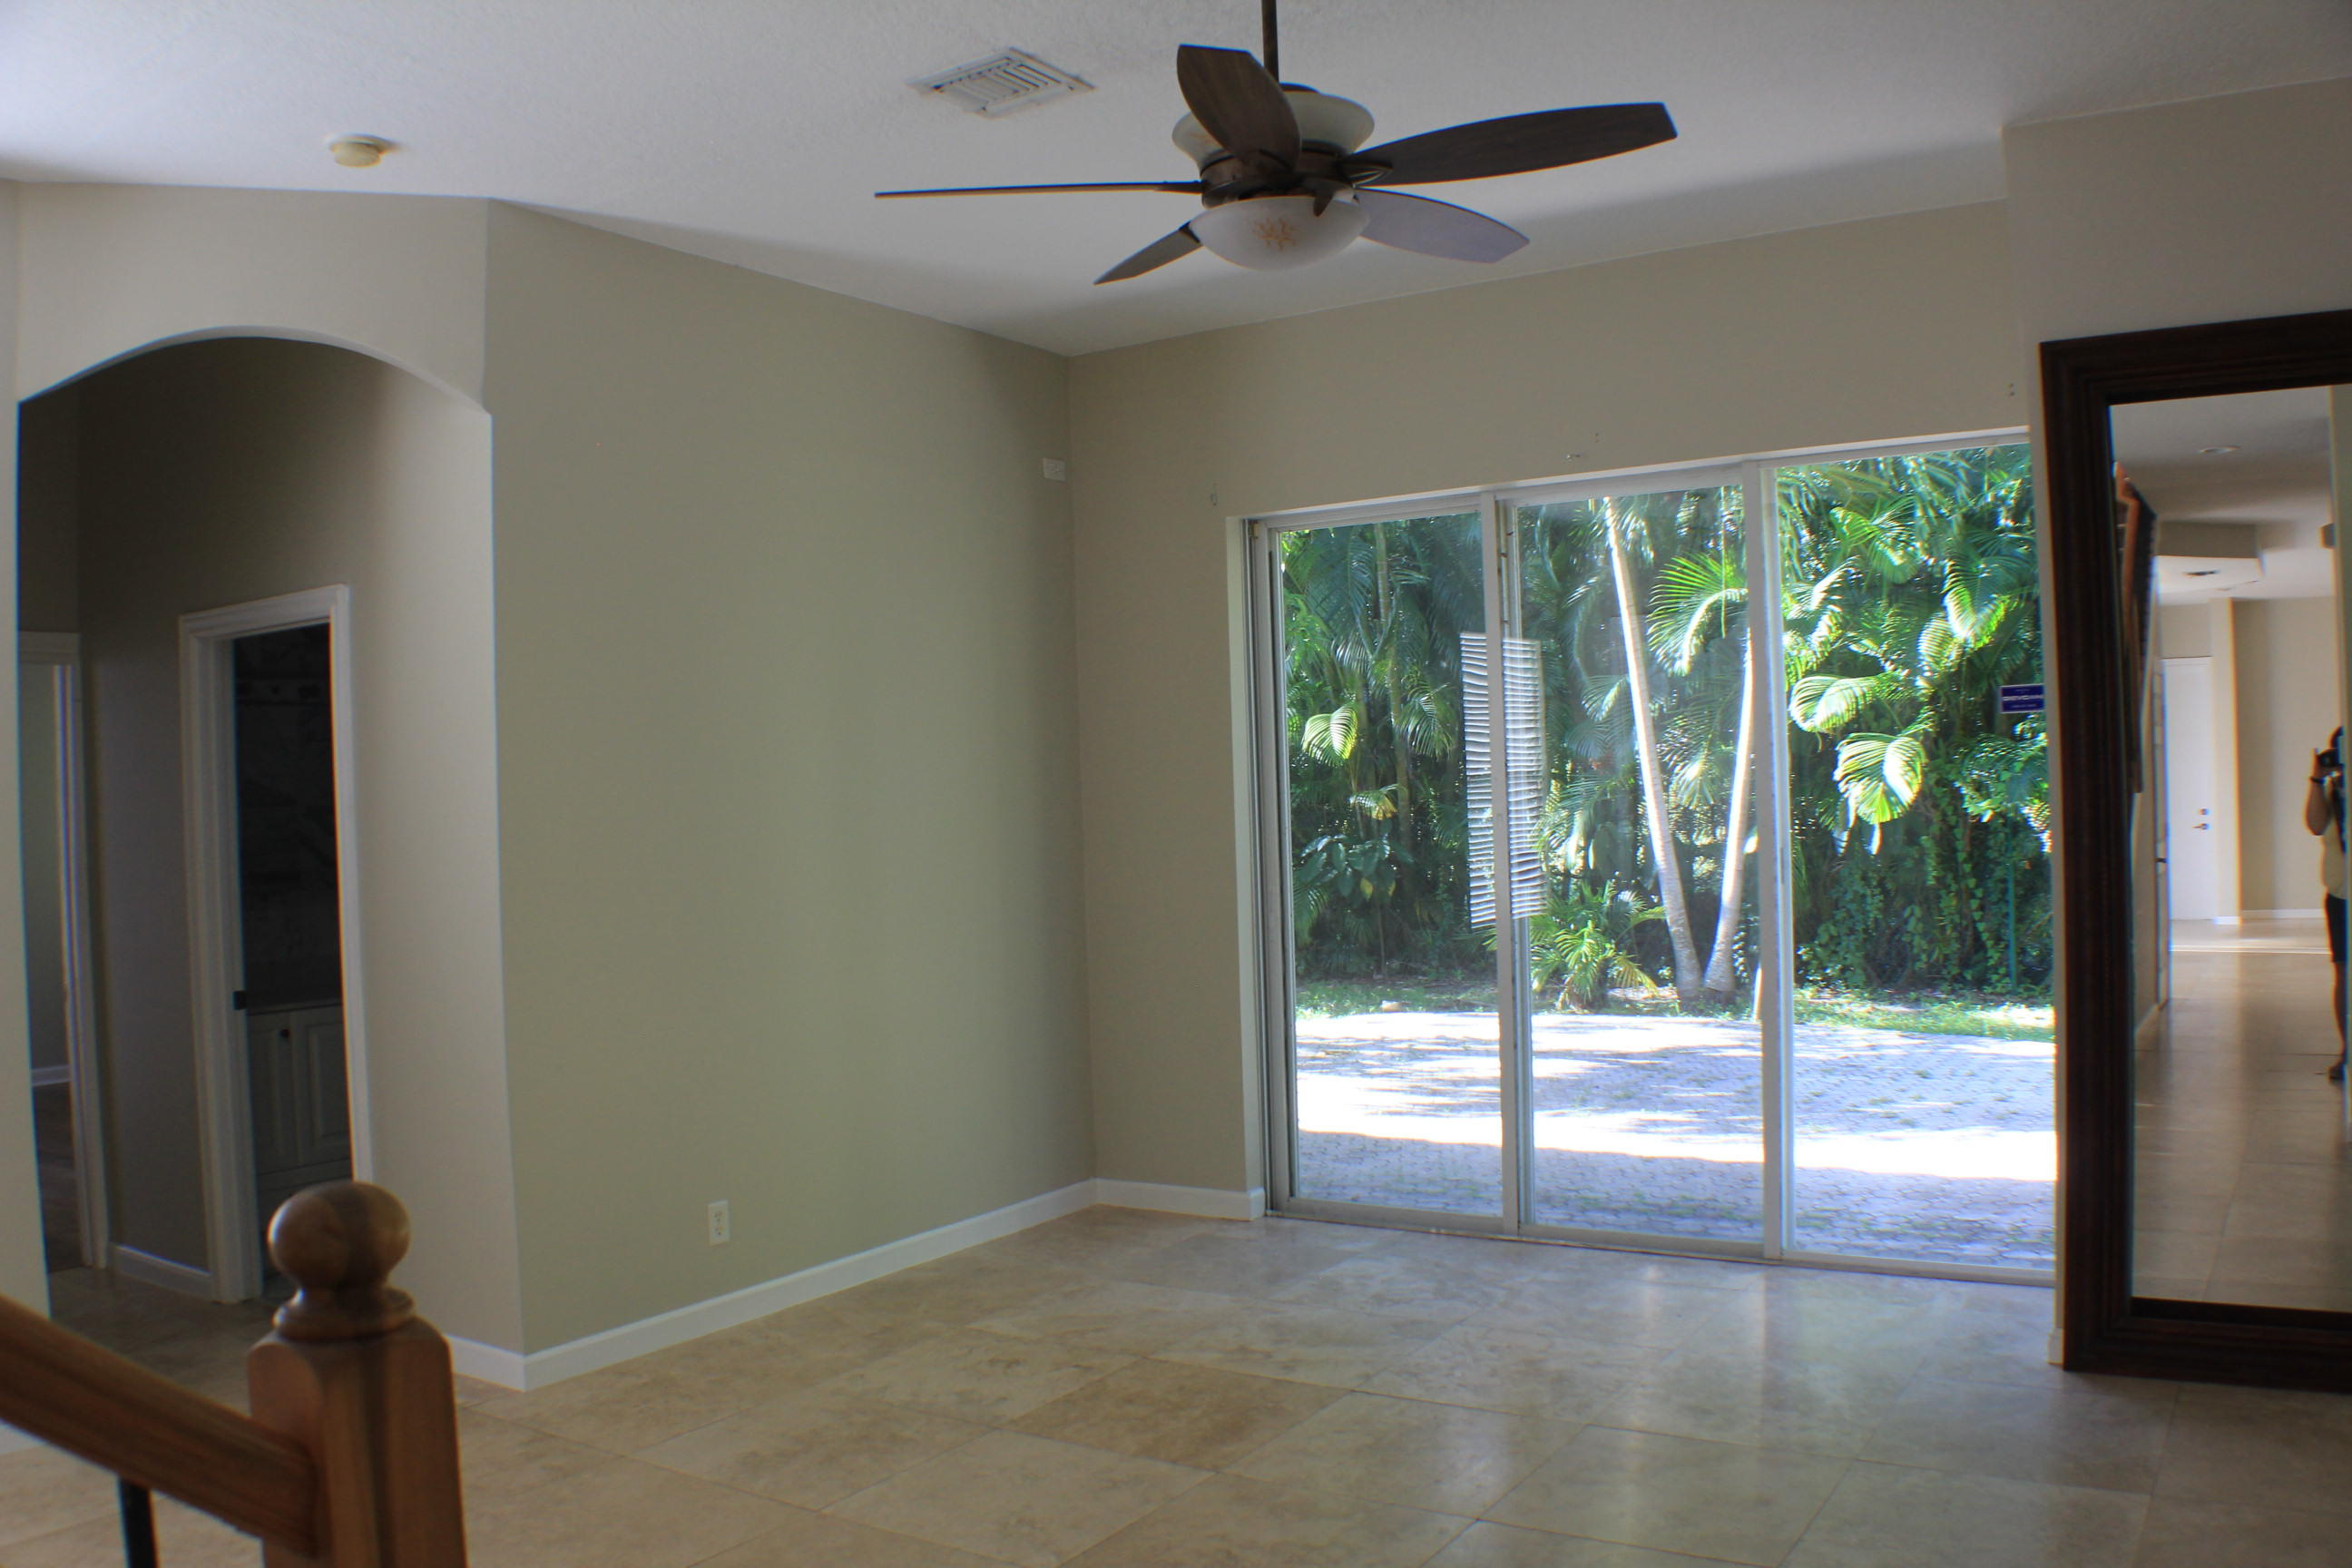 JOURNEYS END LAKE WORTH REAL ESTATE